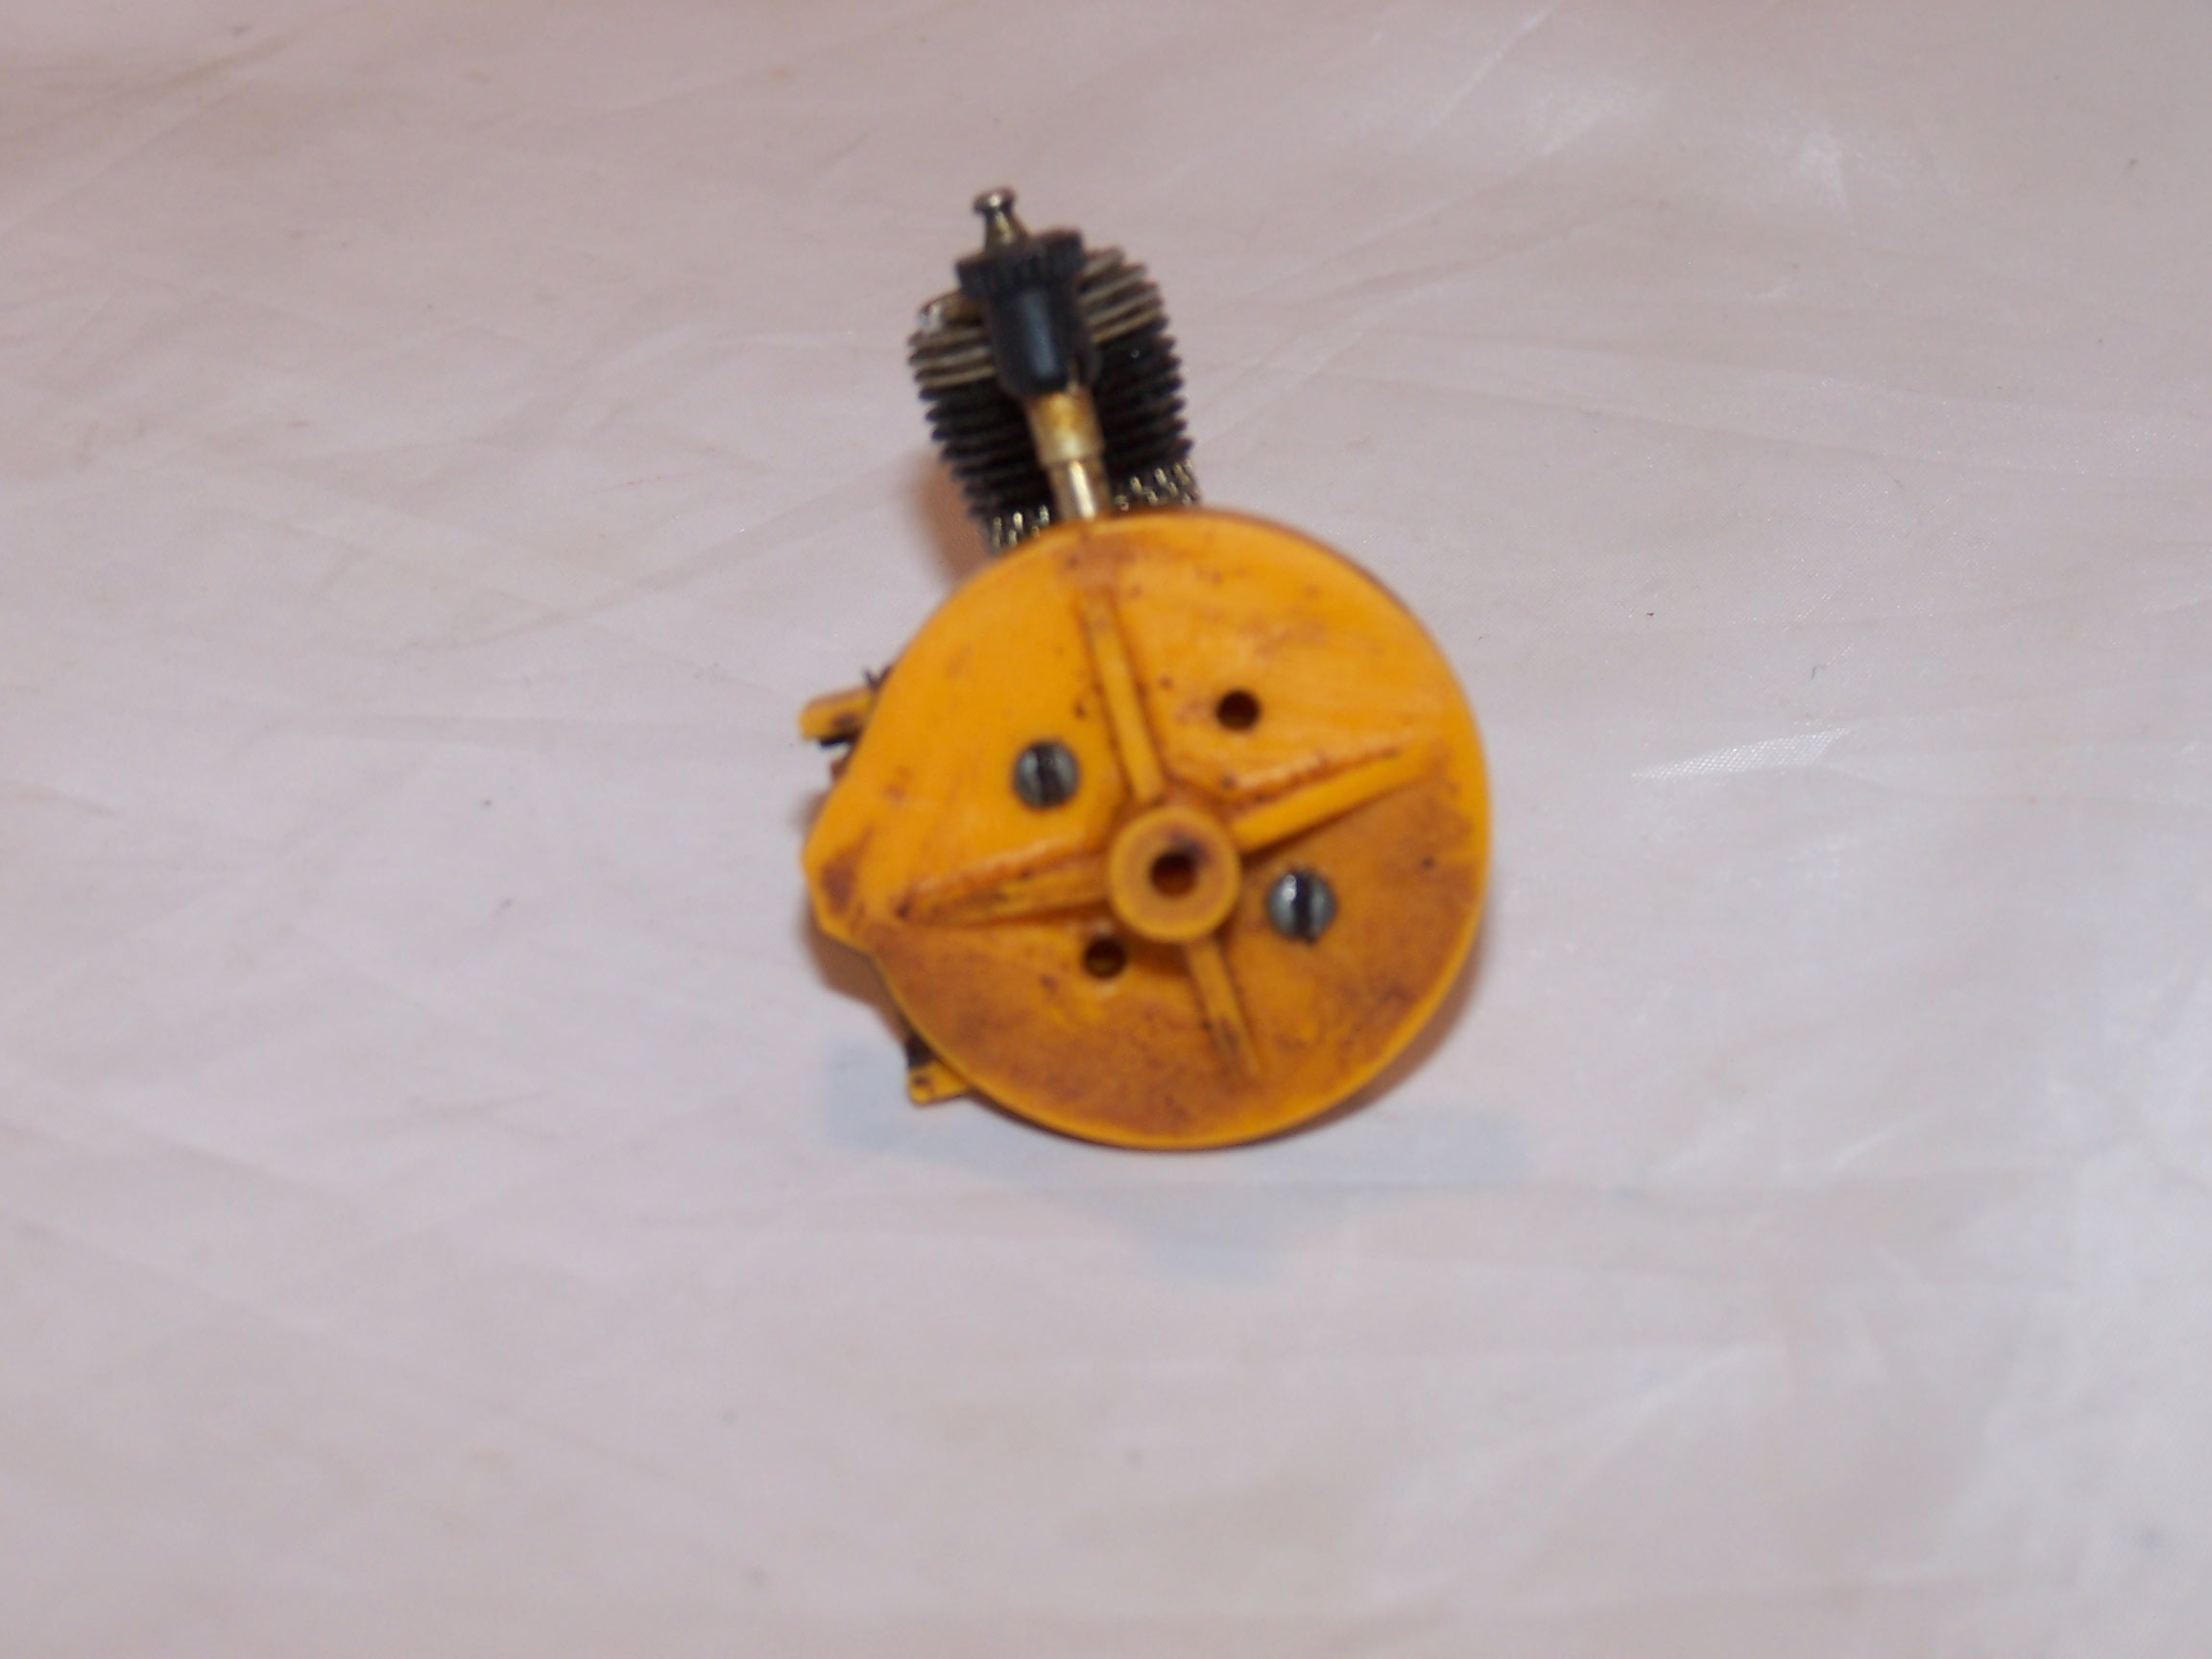 Image 1 of Radio Control RC Airplane Motor, Vintage